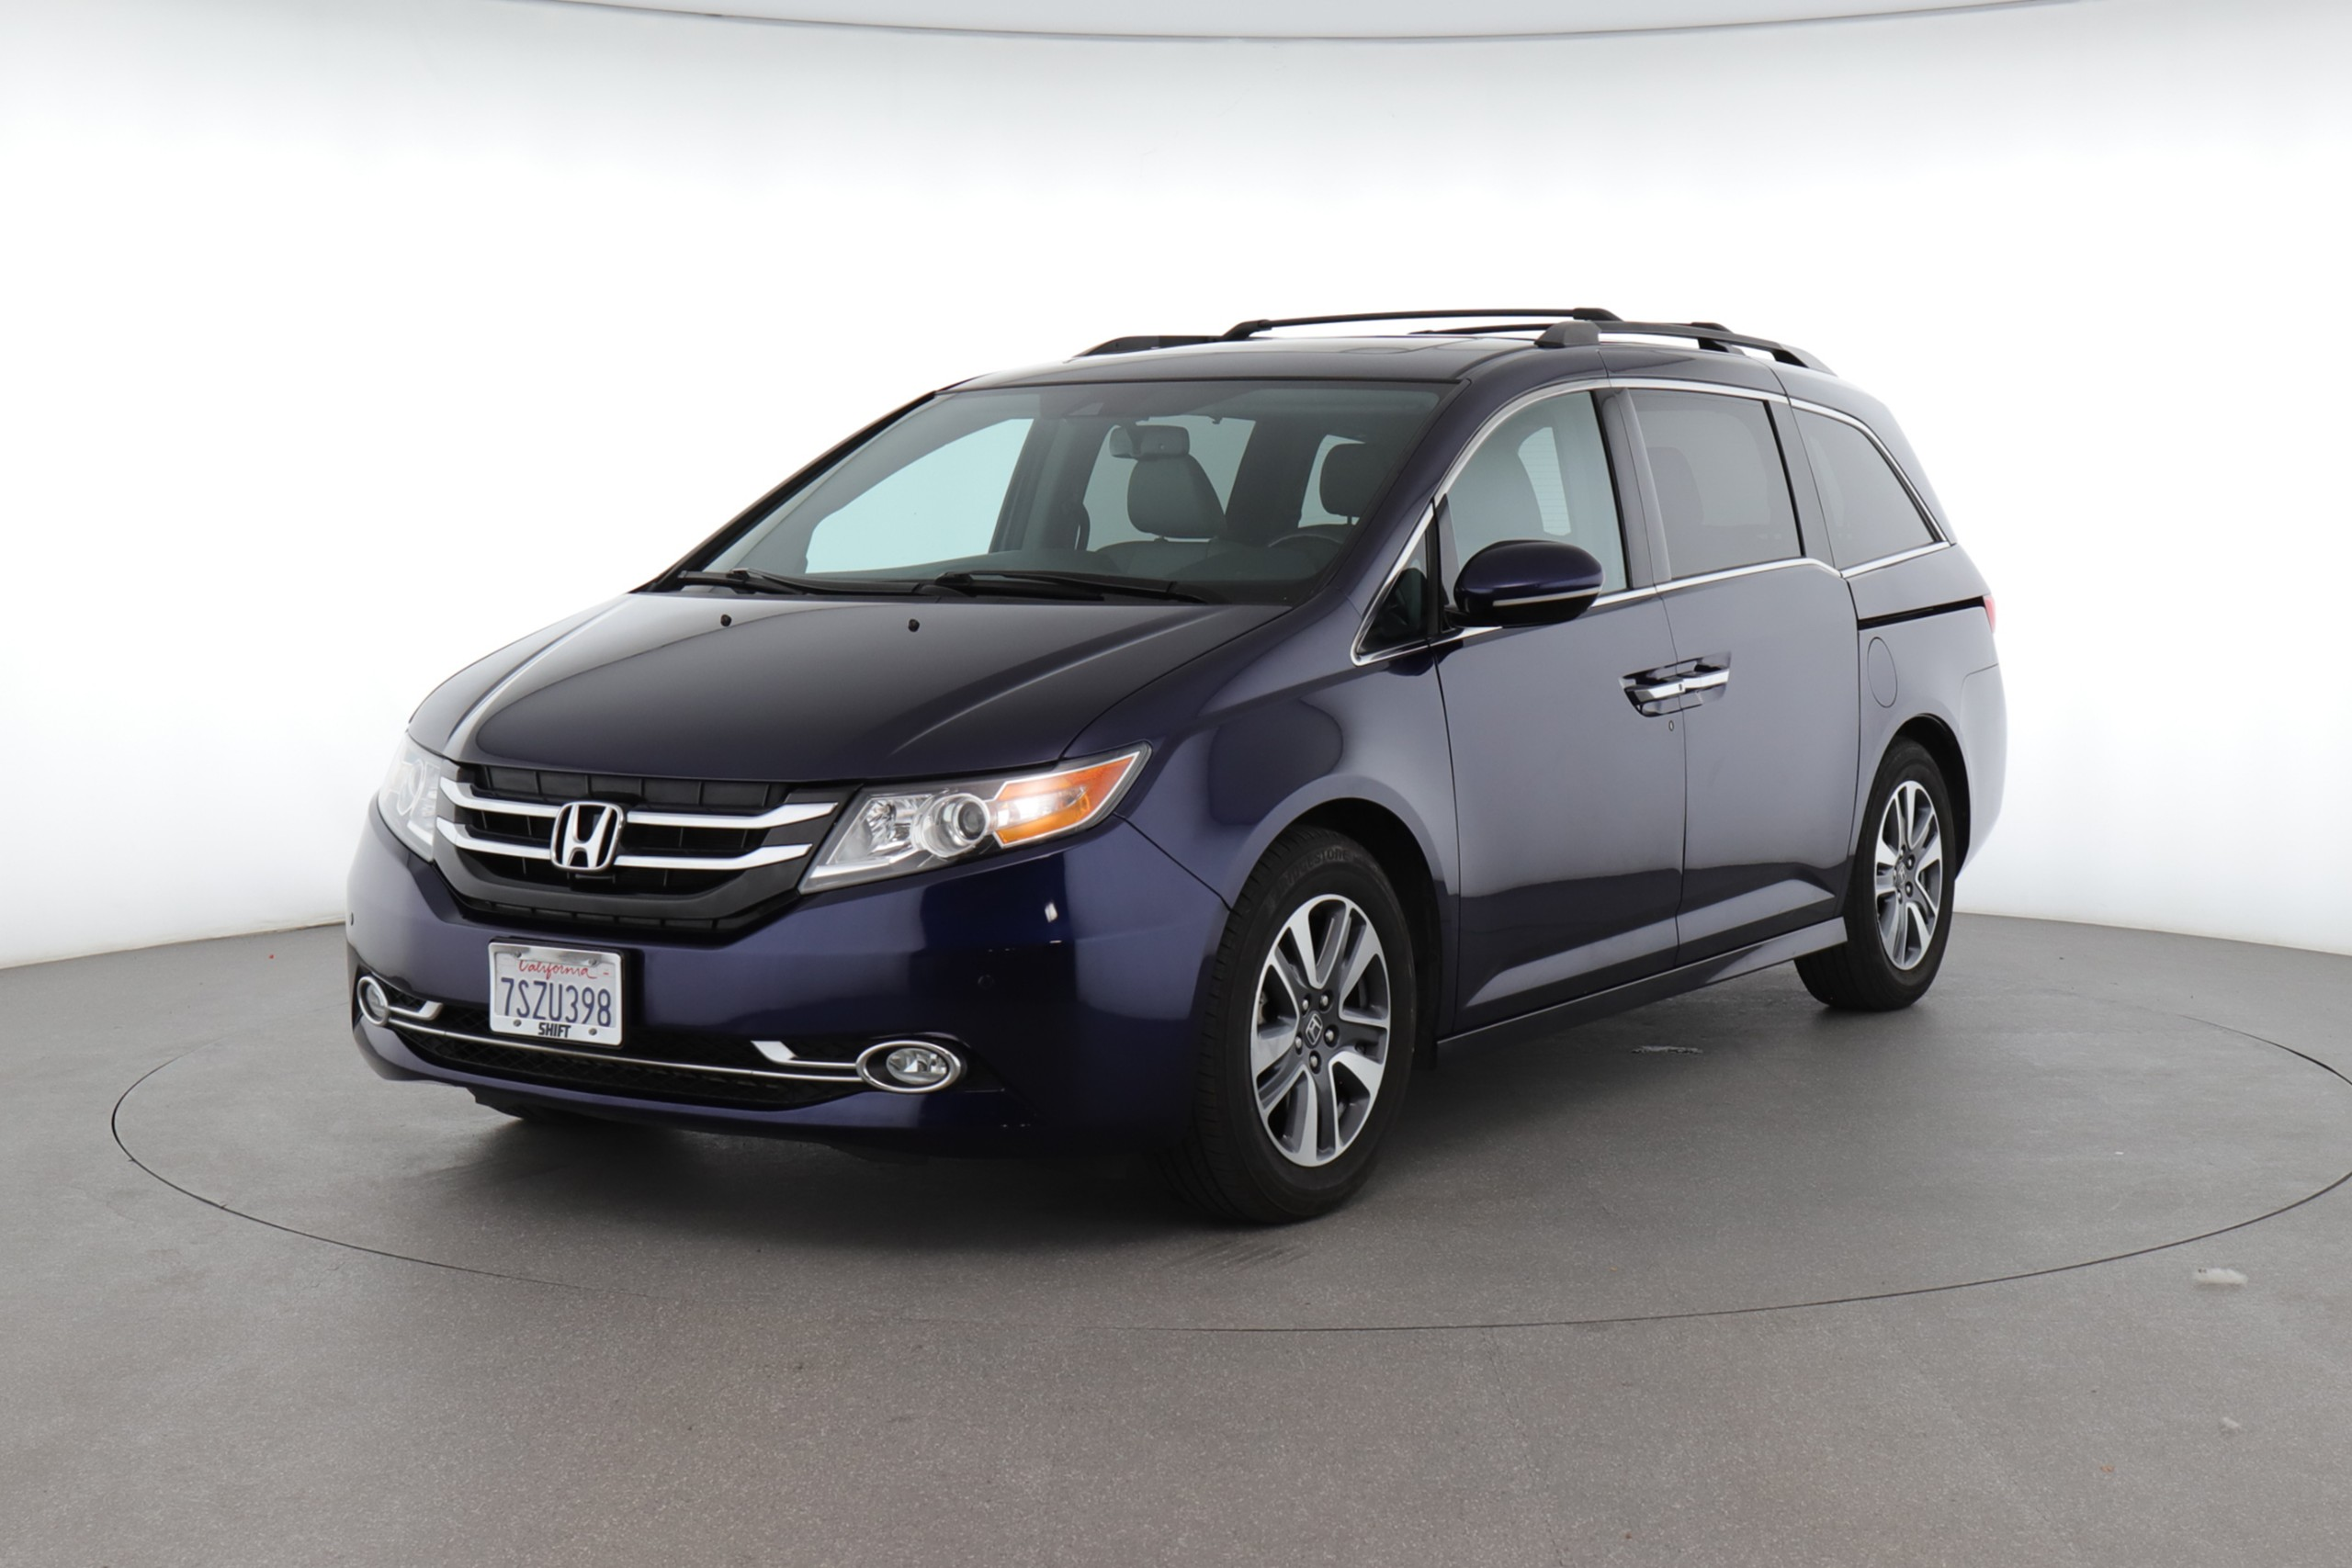 2016 Honda Odyssey Touring (from $28,450)